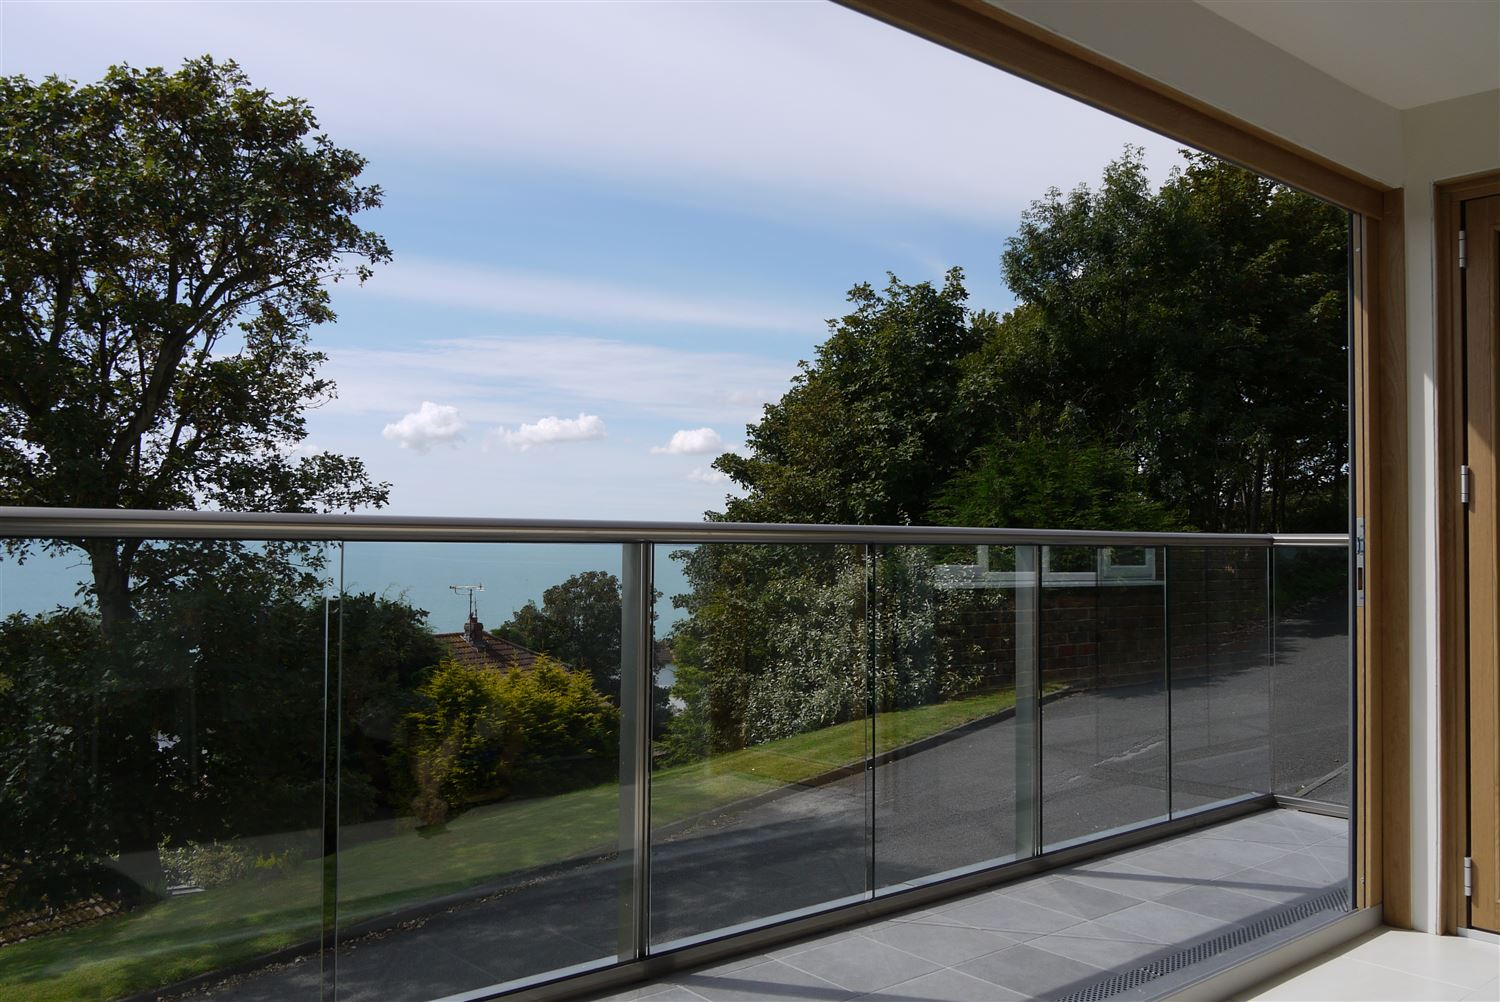 What are Glass Balustrades and What Purposes do They Serve?